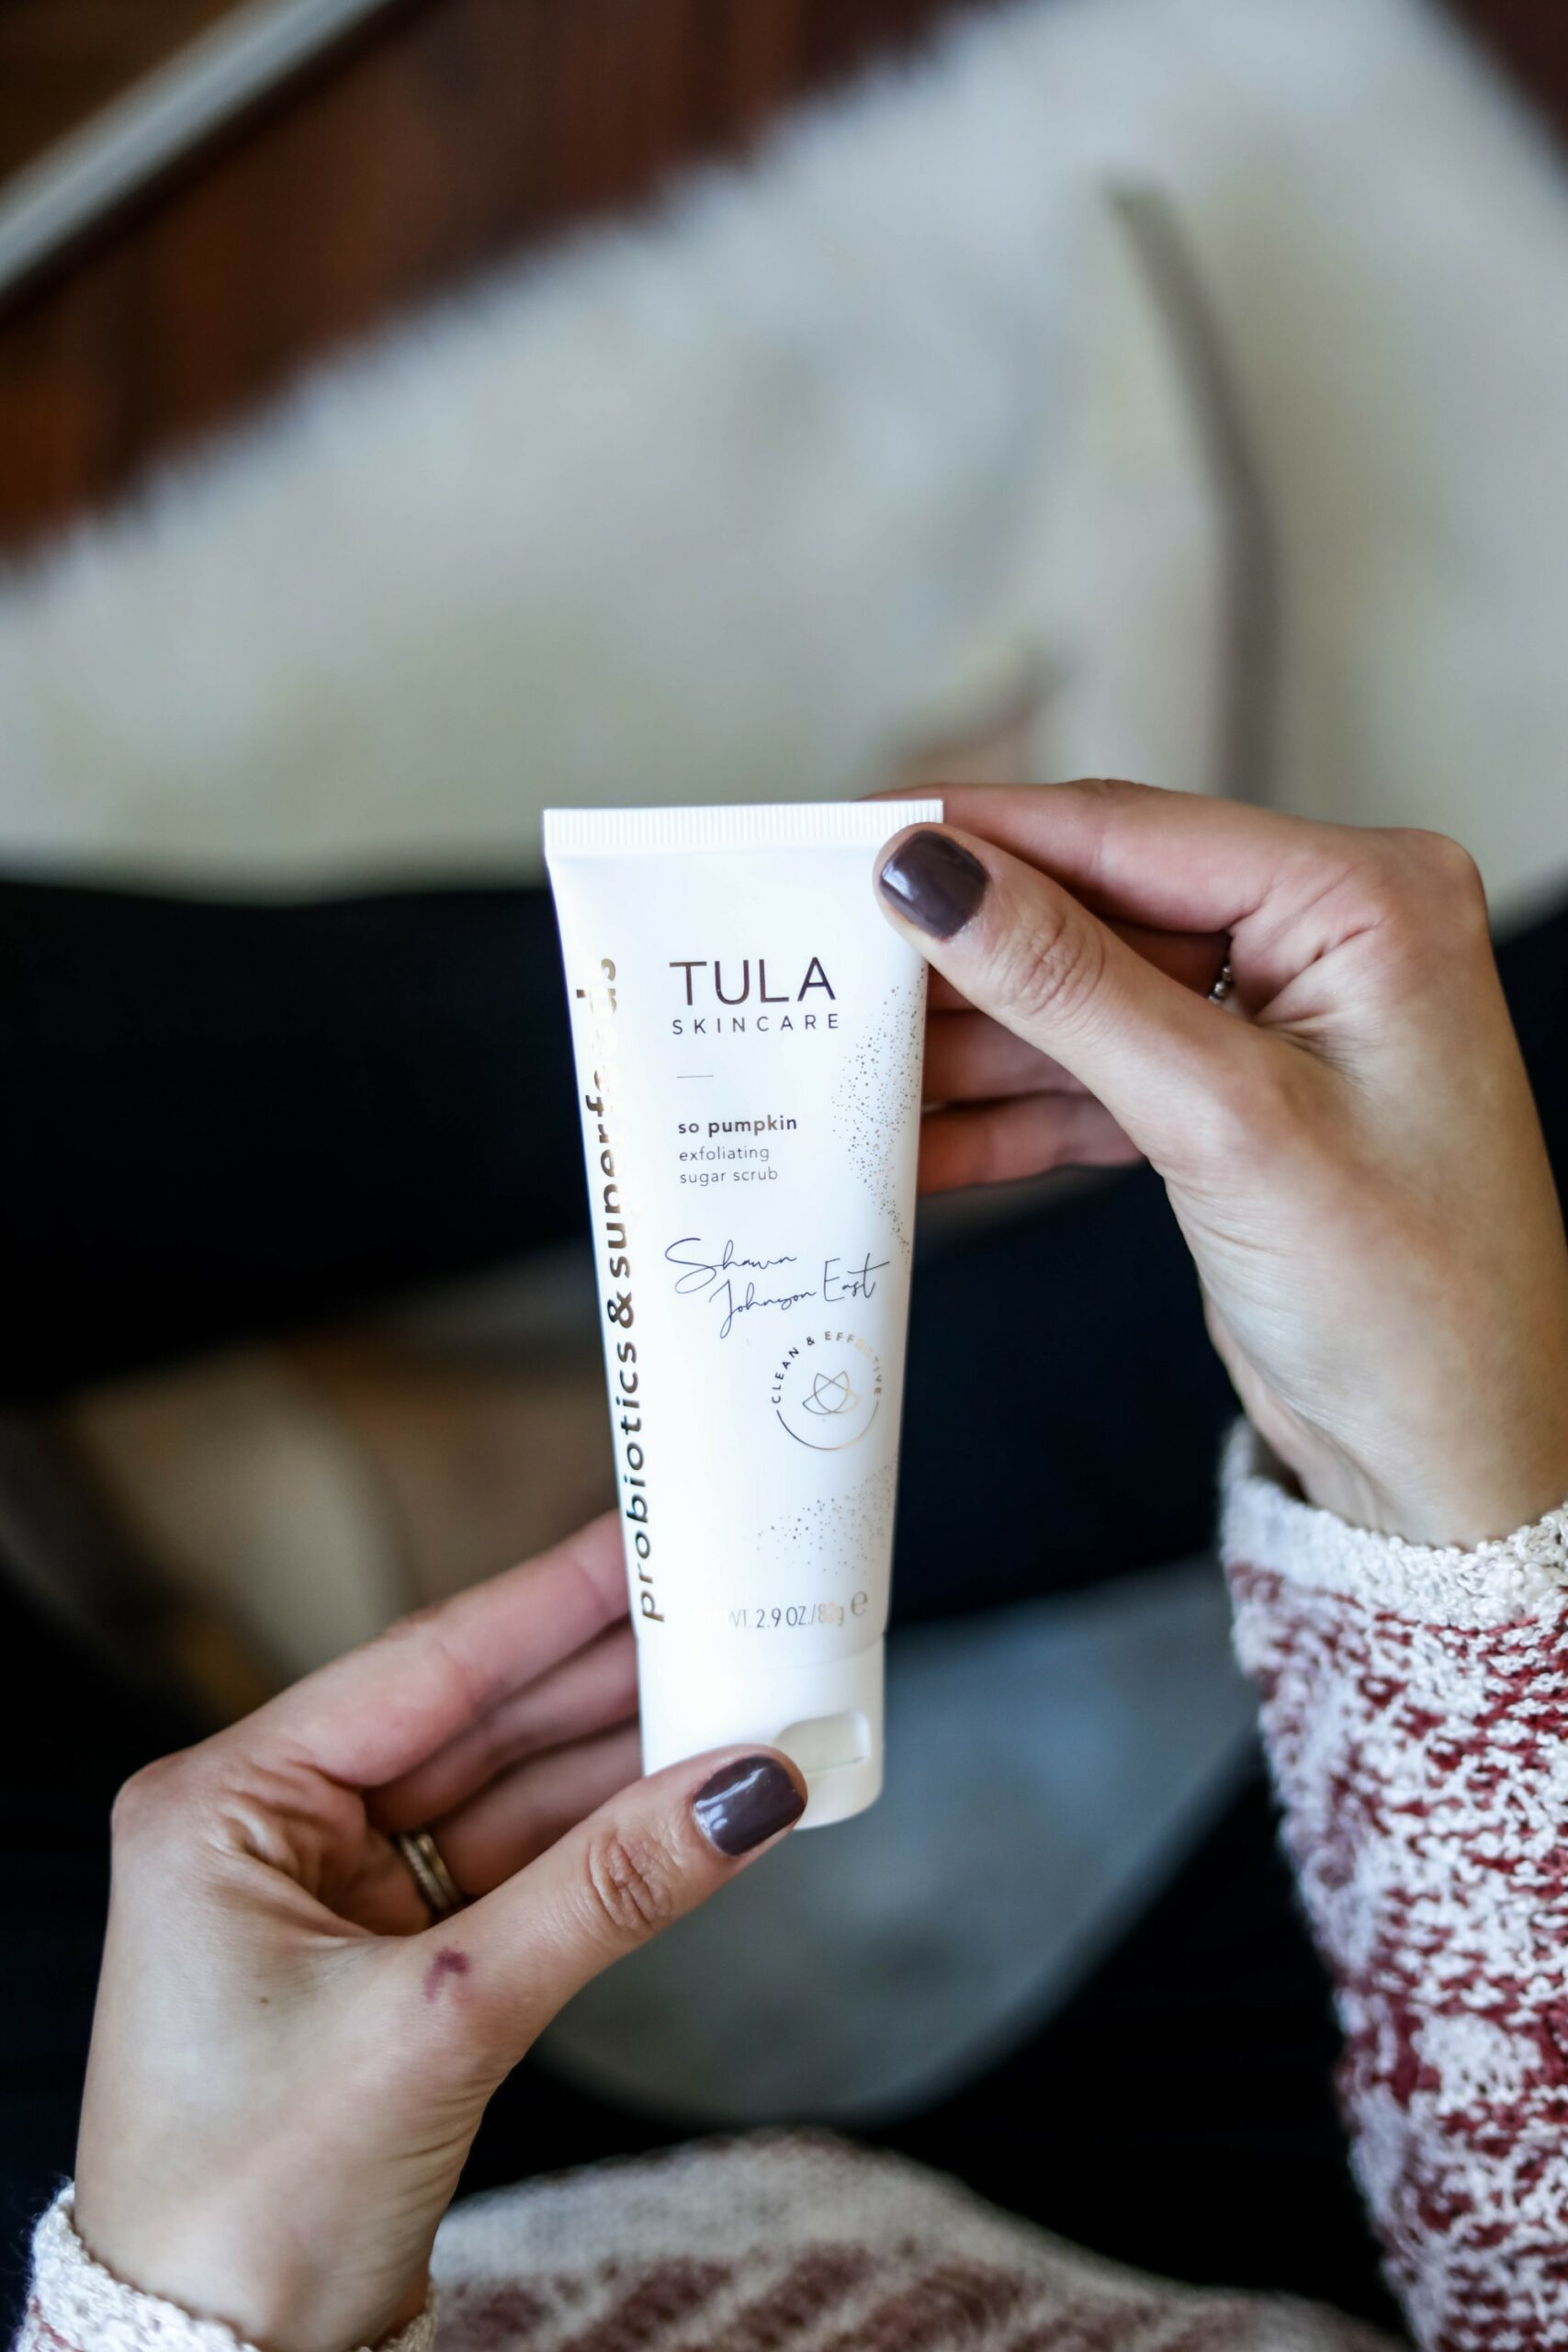 Tula's LIMITED EDITION so polished PUMPKIN exfoliating scrub - Monthly Favorites on Coming Up Roses